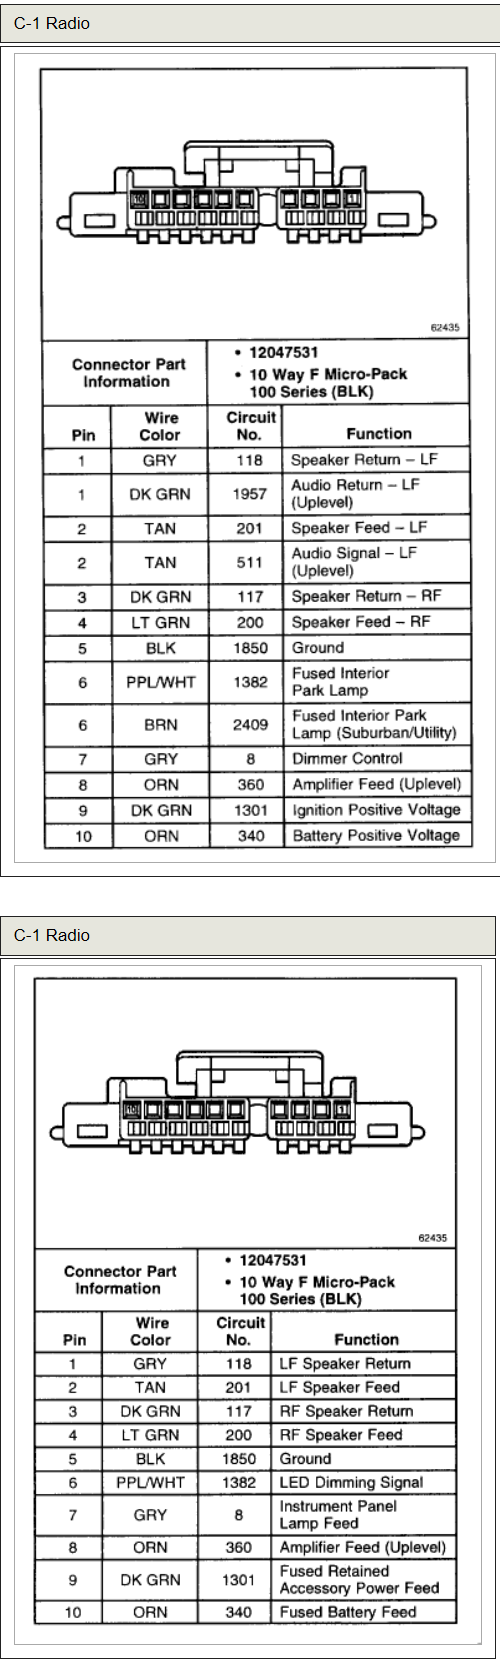 Chevrolet Tahoe LS 2000 stereo wiring connector 2 chevy cruze radio wiring diagram wiring diagram and schematic design 2015 chevy cruze radio wiring diagram at fashall.co